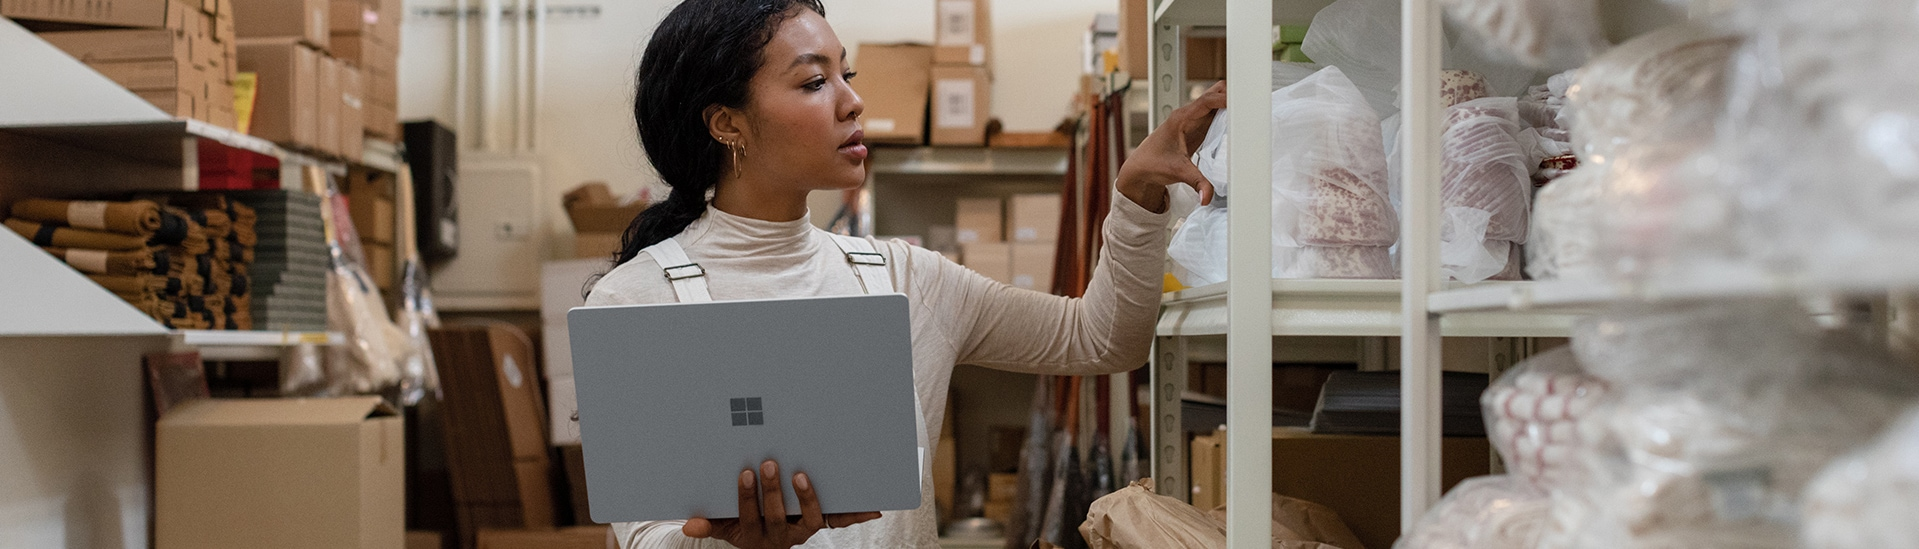 A person looking at items on a shelf in a stock room while holding an open Surface laptop